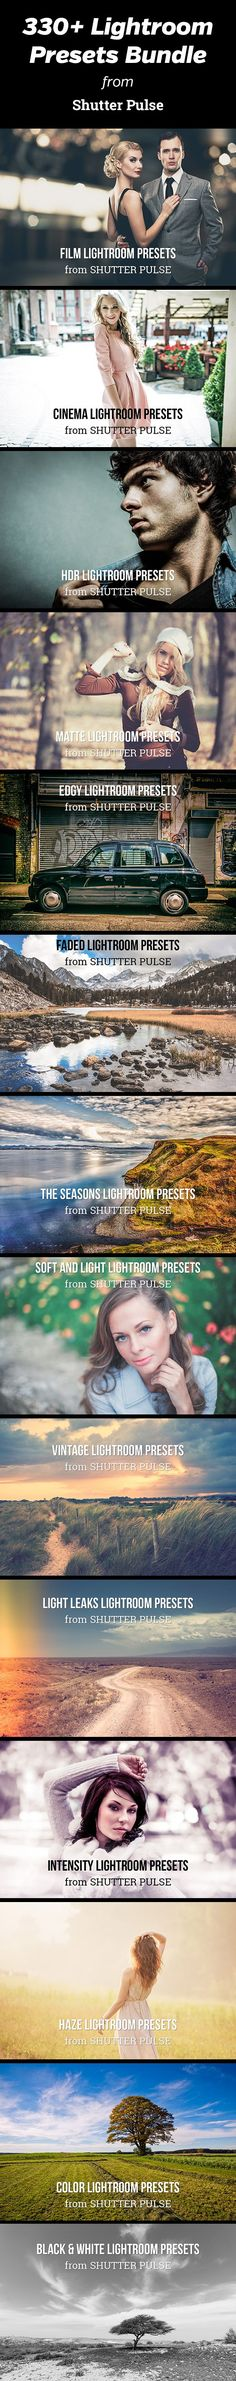 Transform Your Photography with Professional Lightroom Presets - get a bundle of more than 330 Lightroom presets from ShutterPulse.com